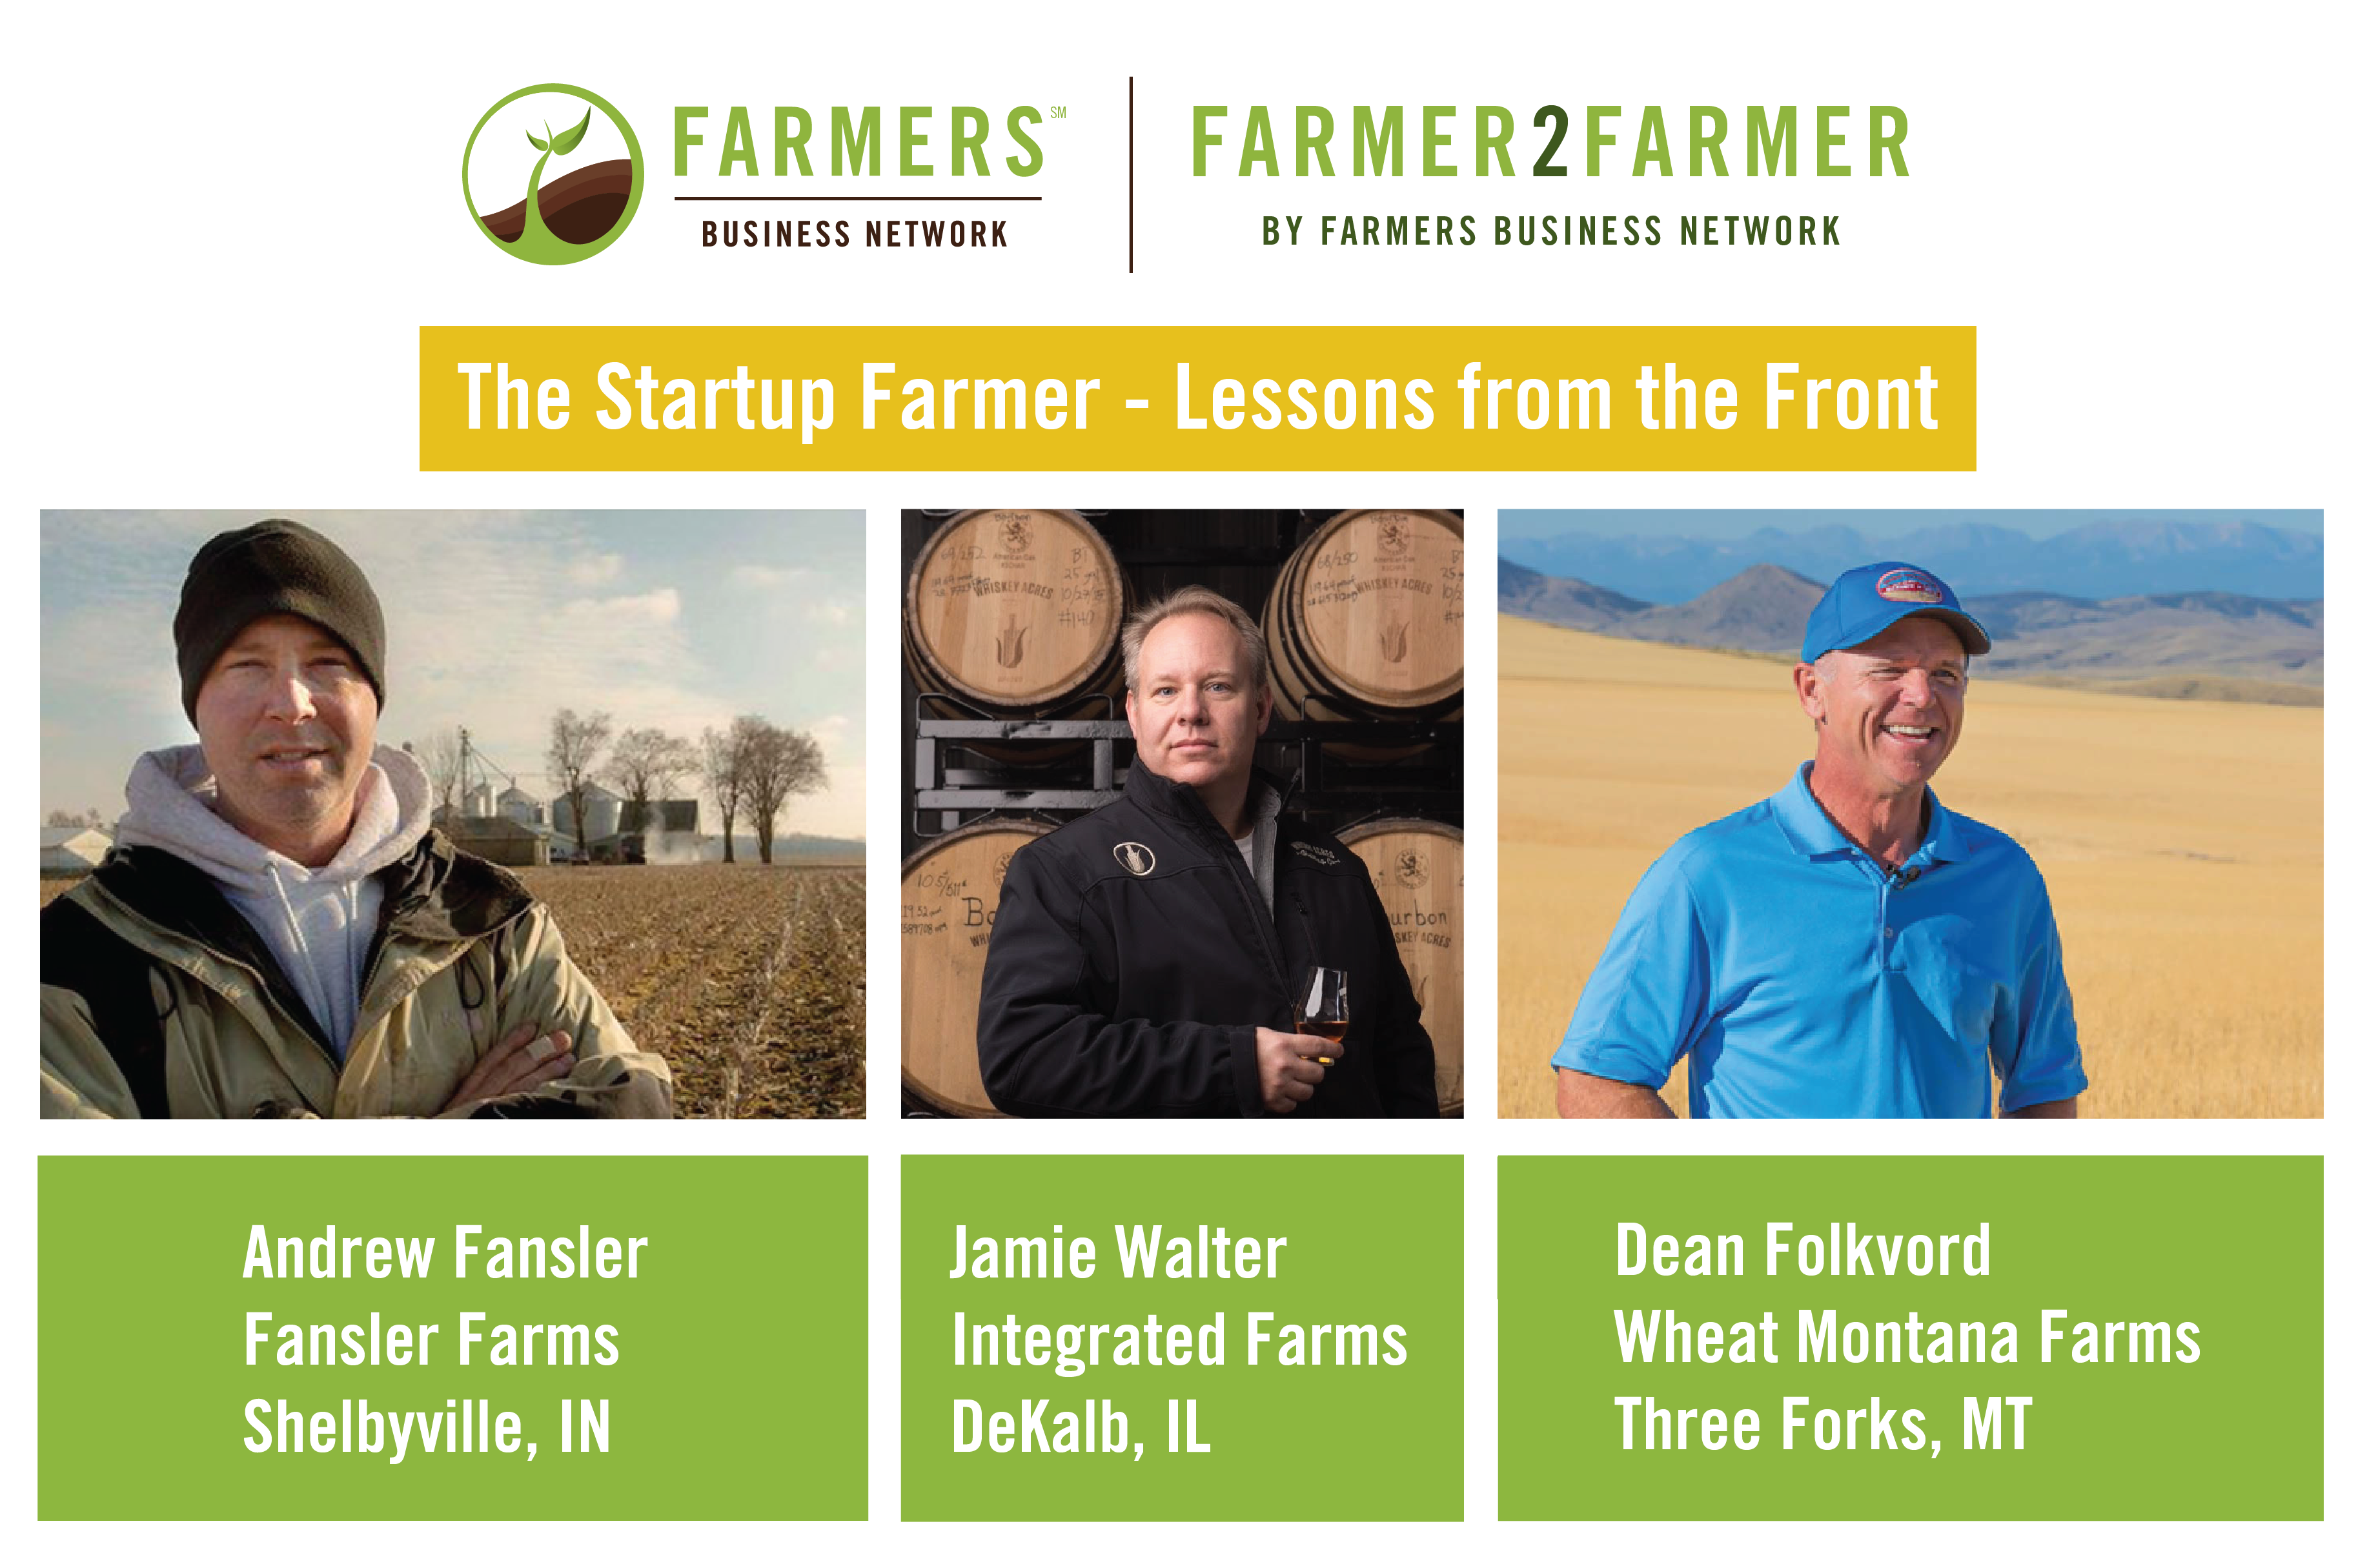 The Startup Farmer - Lessons from the Front F2f16 Panel-Full Farm Name-01.png